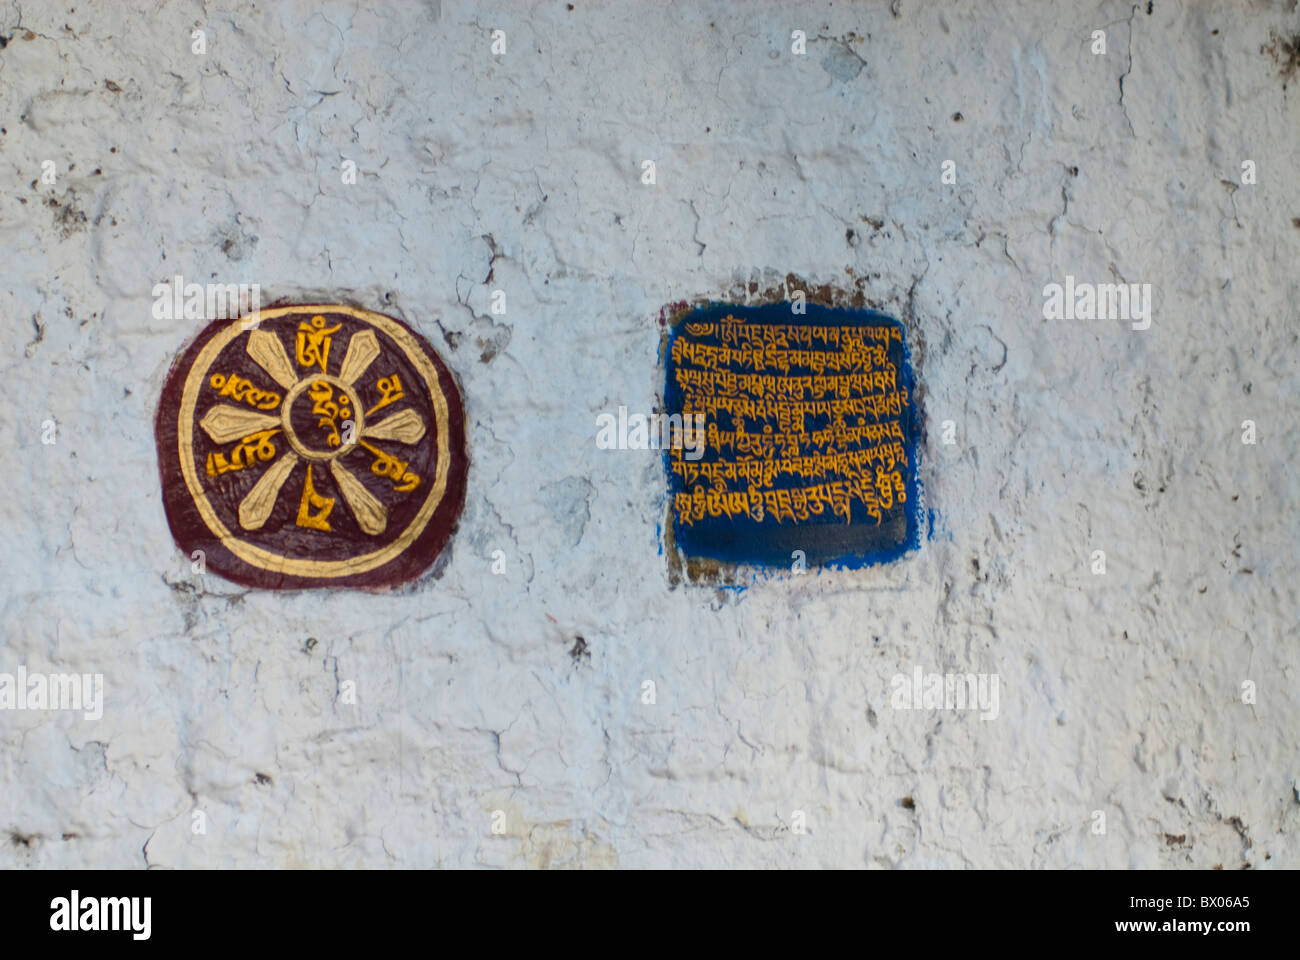 White washed wall decorated with wheel and scripture, Potala Palace, Lhasa, Tibet, China - Stock Image